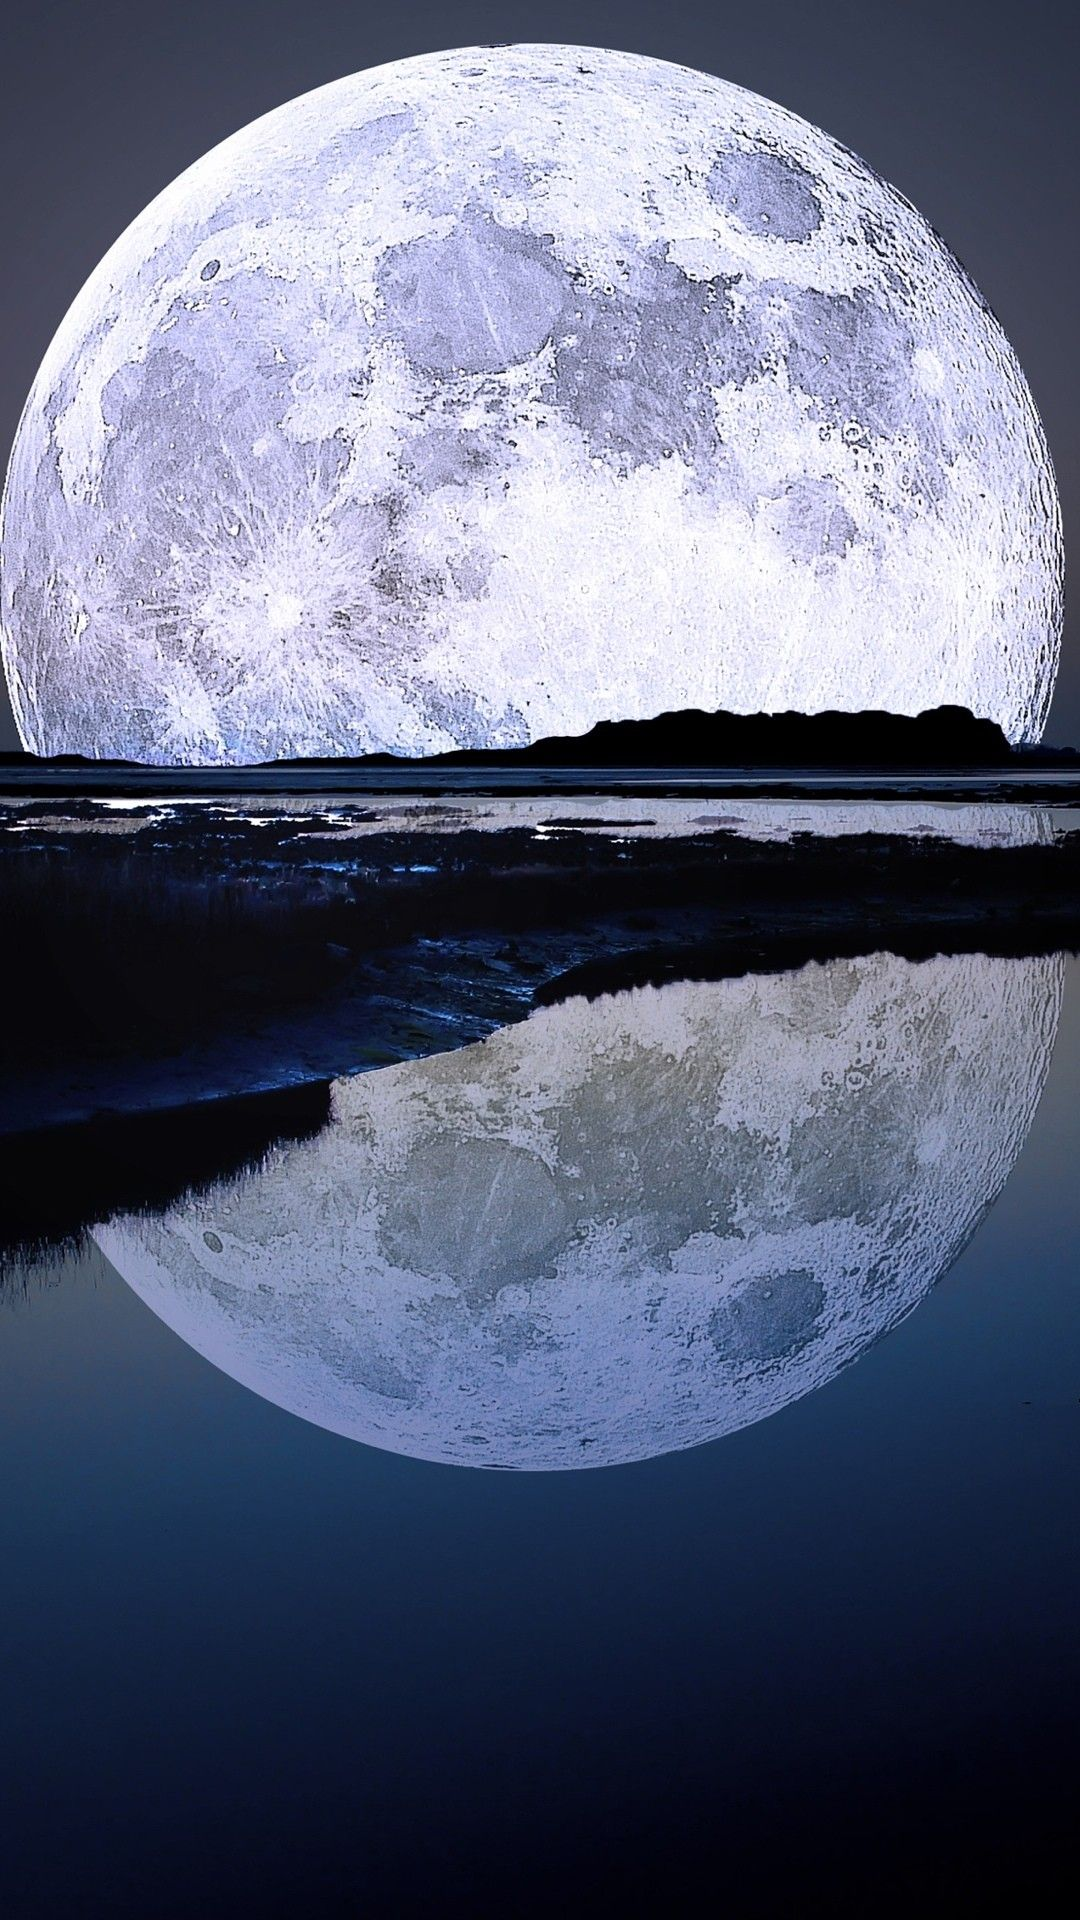 Wallpaper iphone moon - Nature Iphone 6 Plus Wallpapers Super Moon Water Reflection Iphone 6 Plus Hd